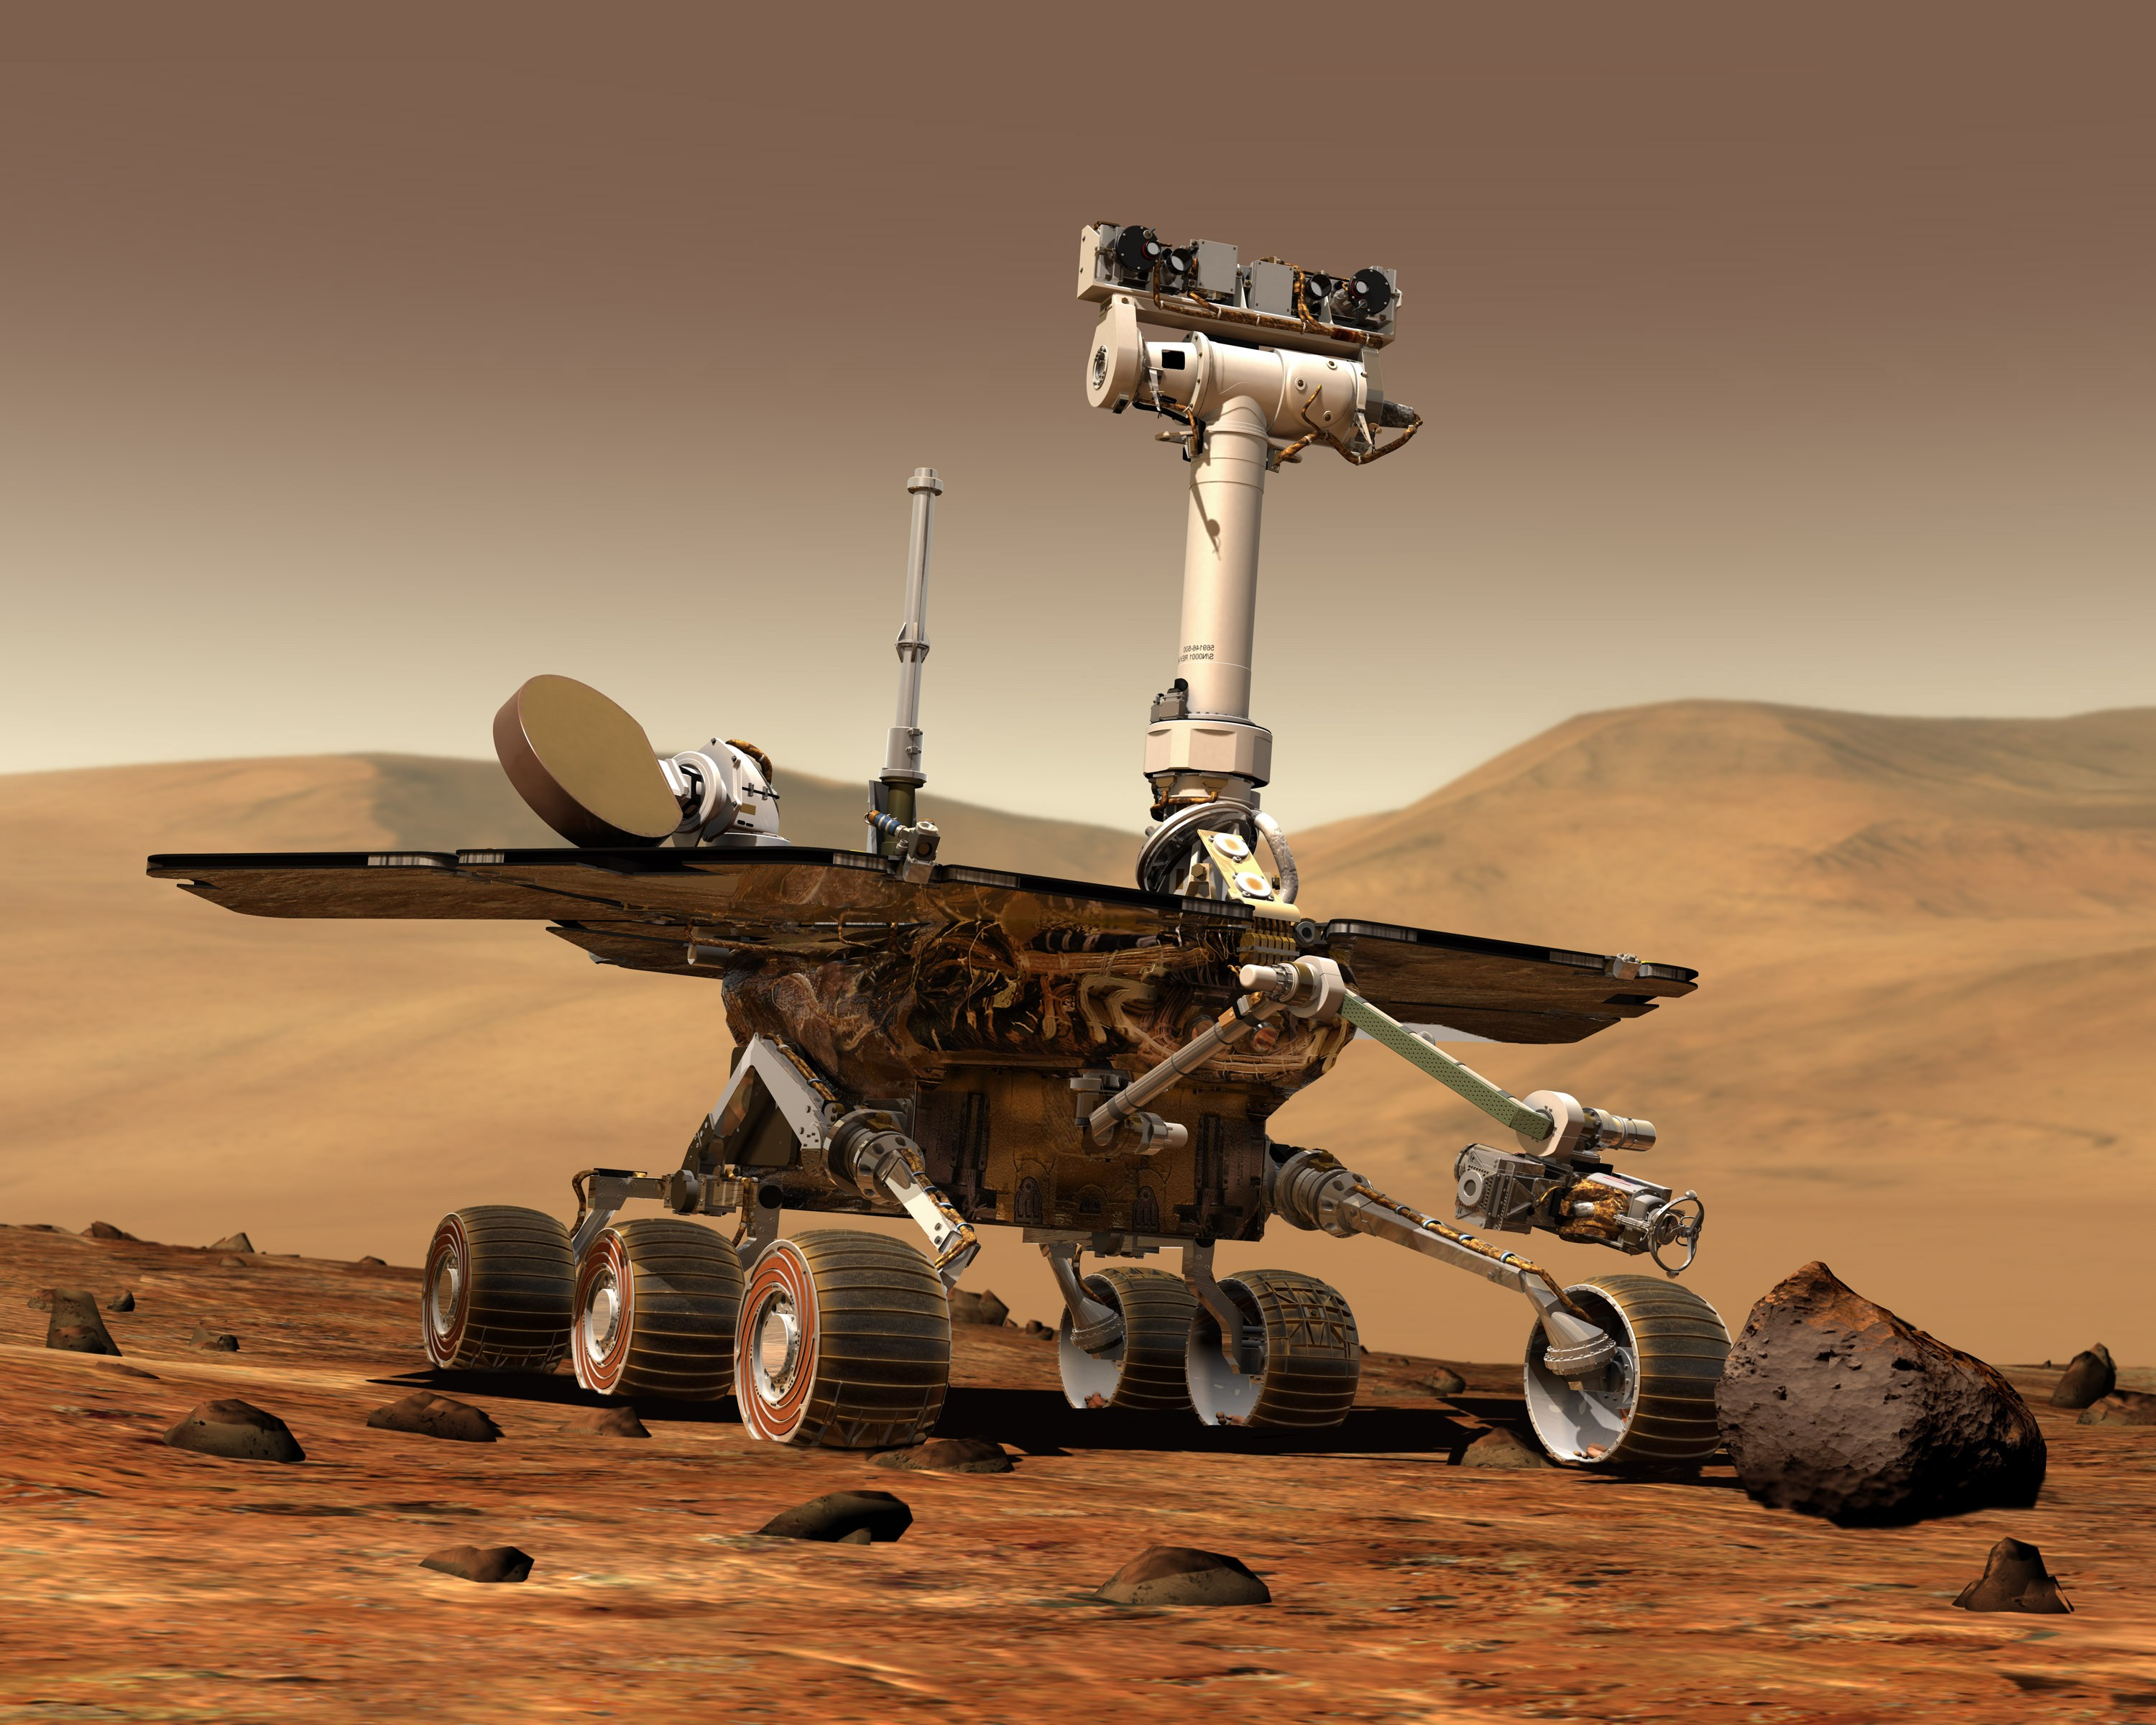 nasa mars exploration rover mission - photo #10